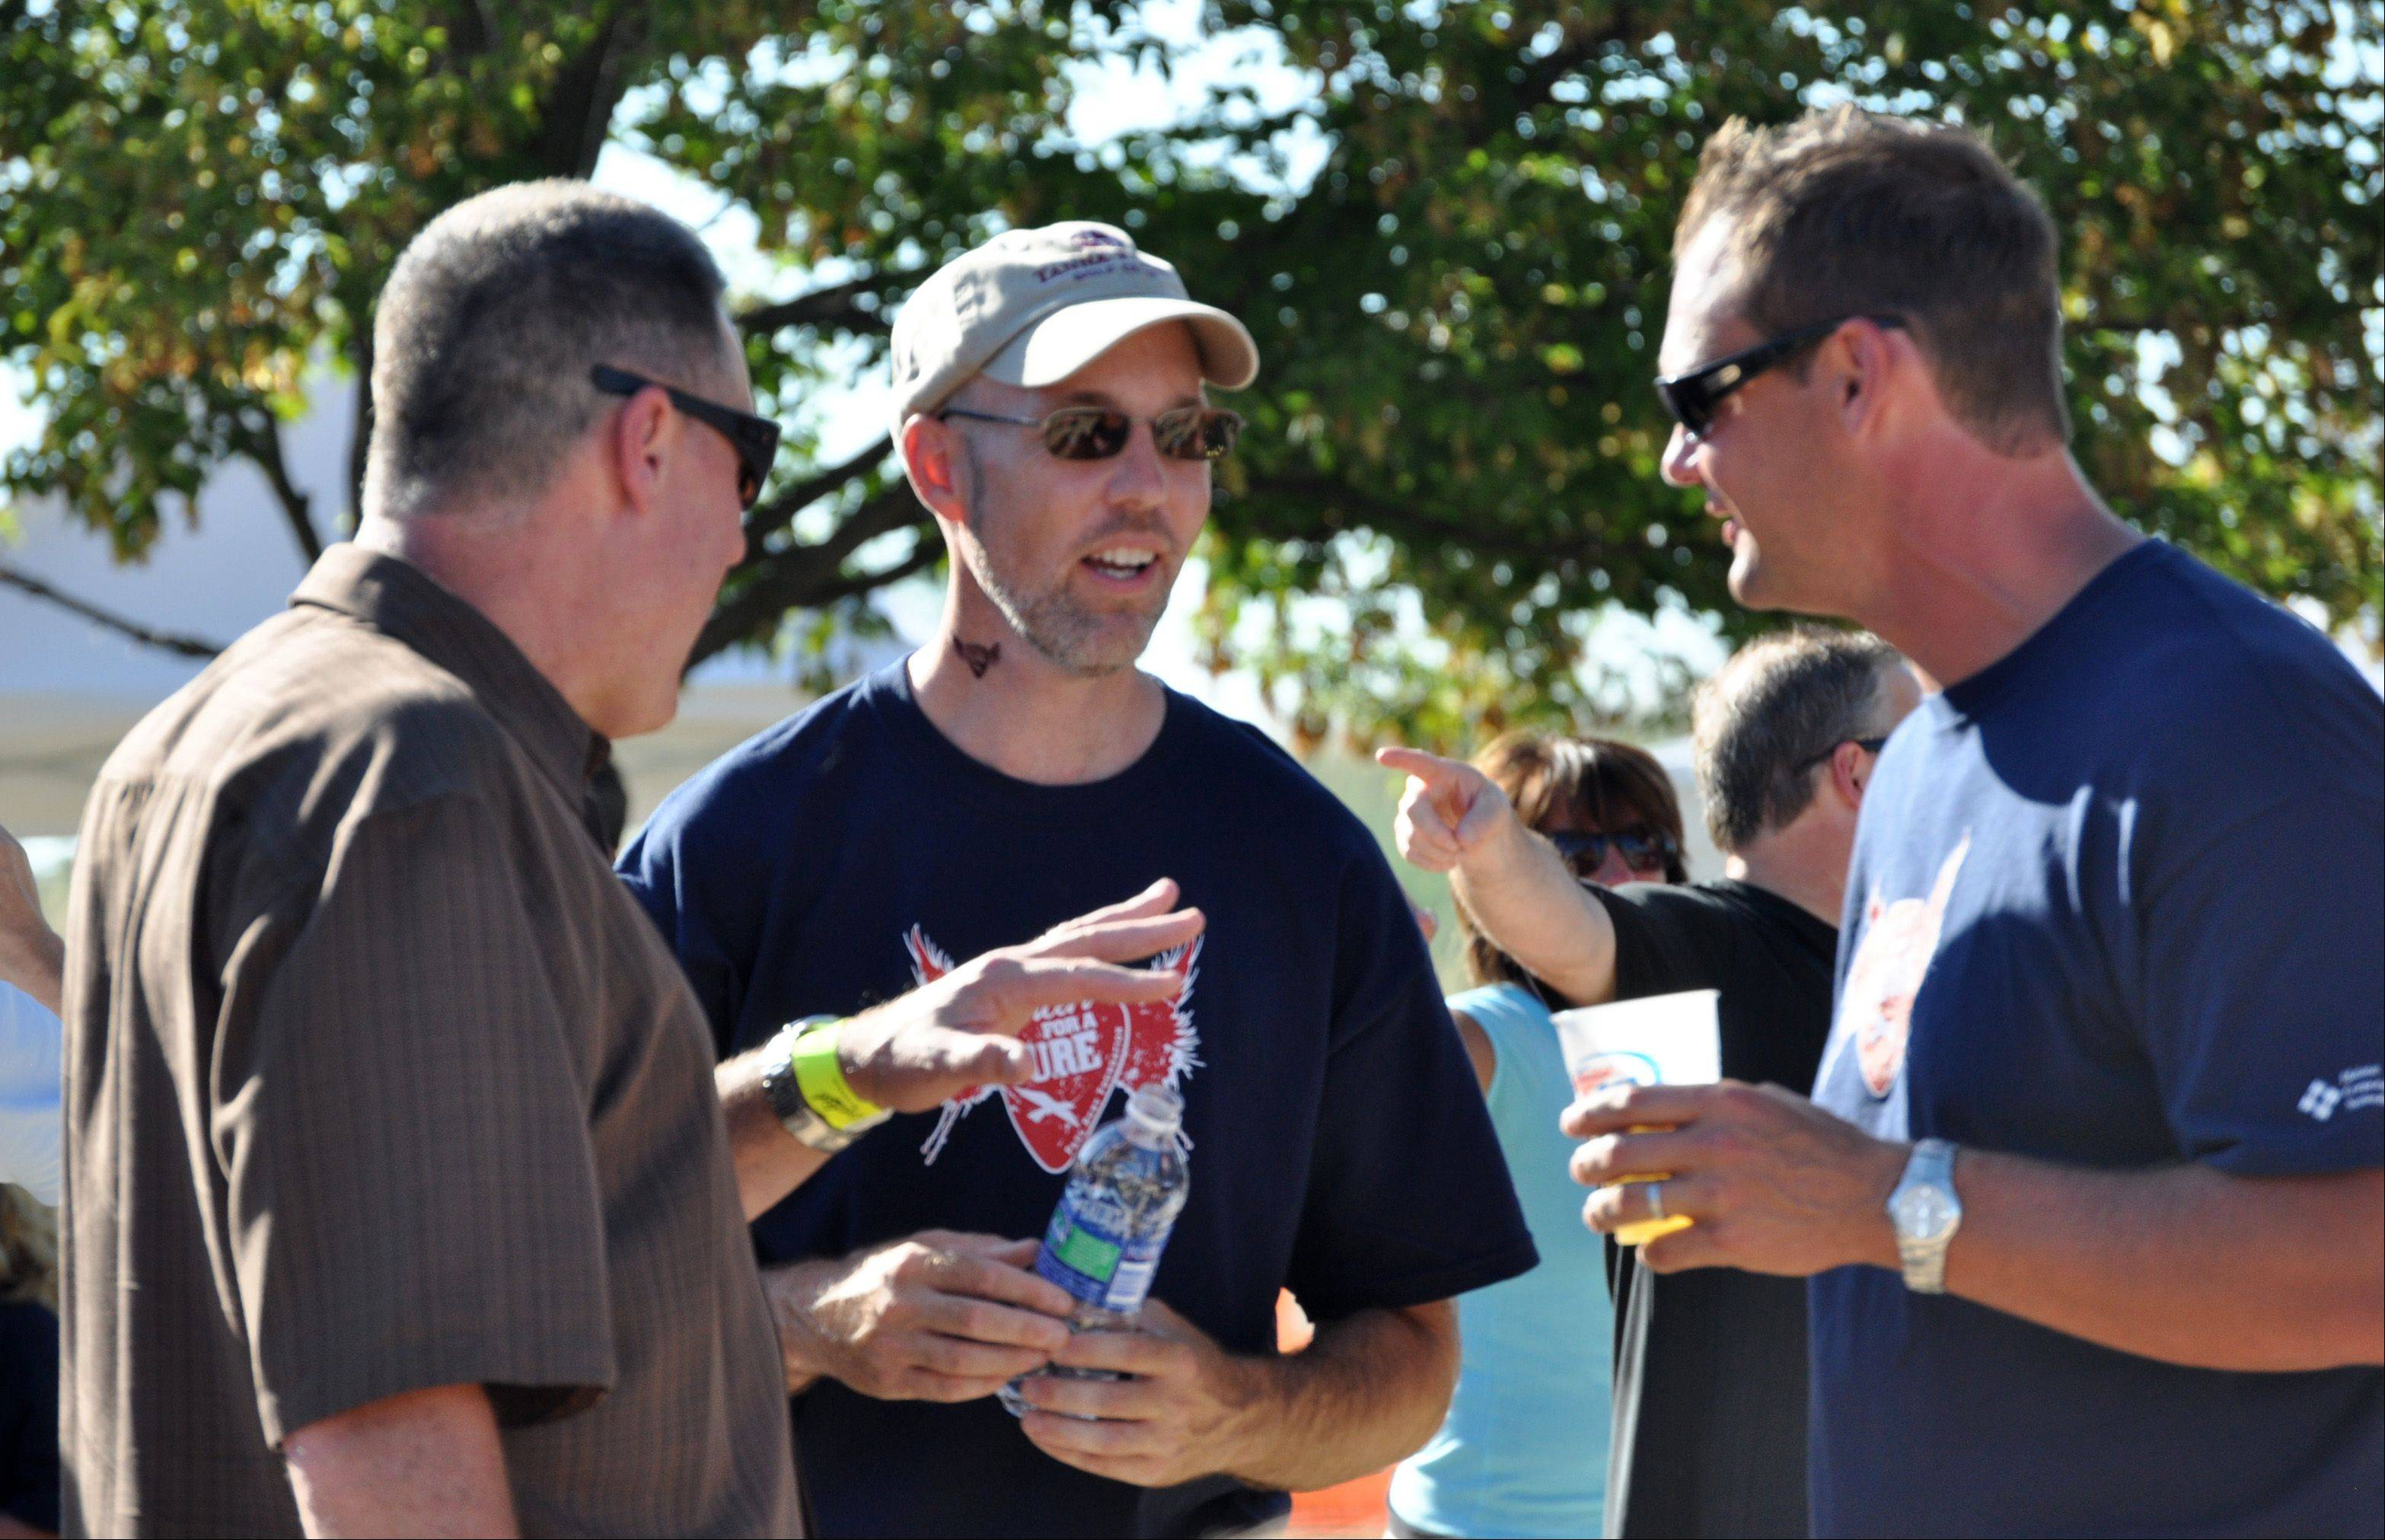 DAILY HERALD PHOTO Paul Ruby, center, visits with guests at the 2008 fundraiser to benefit Parkinson's disease research.